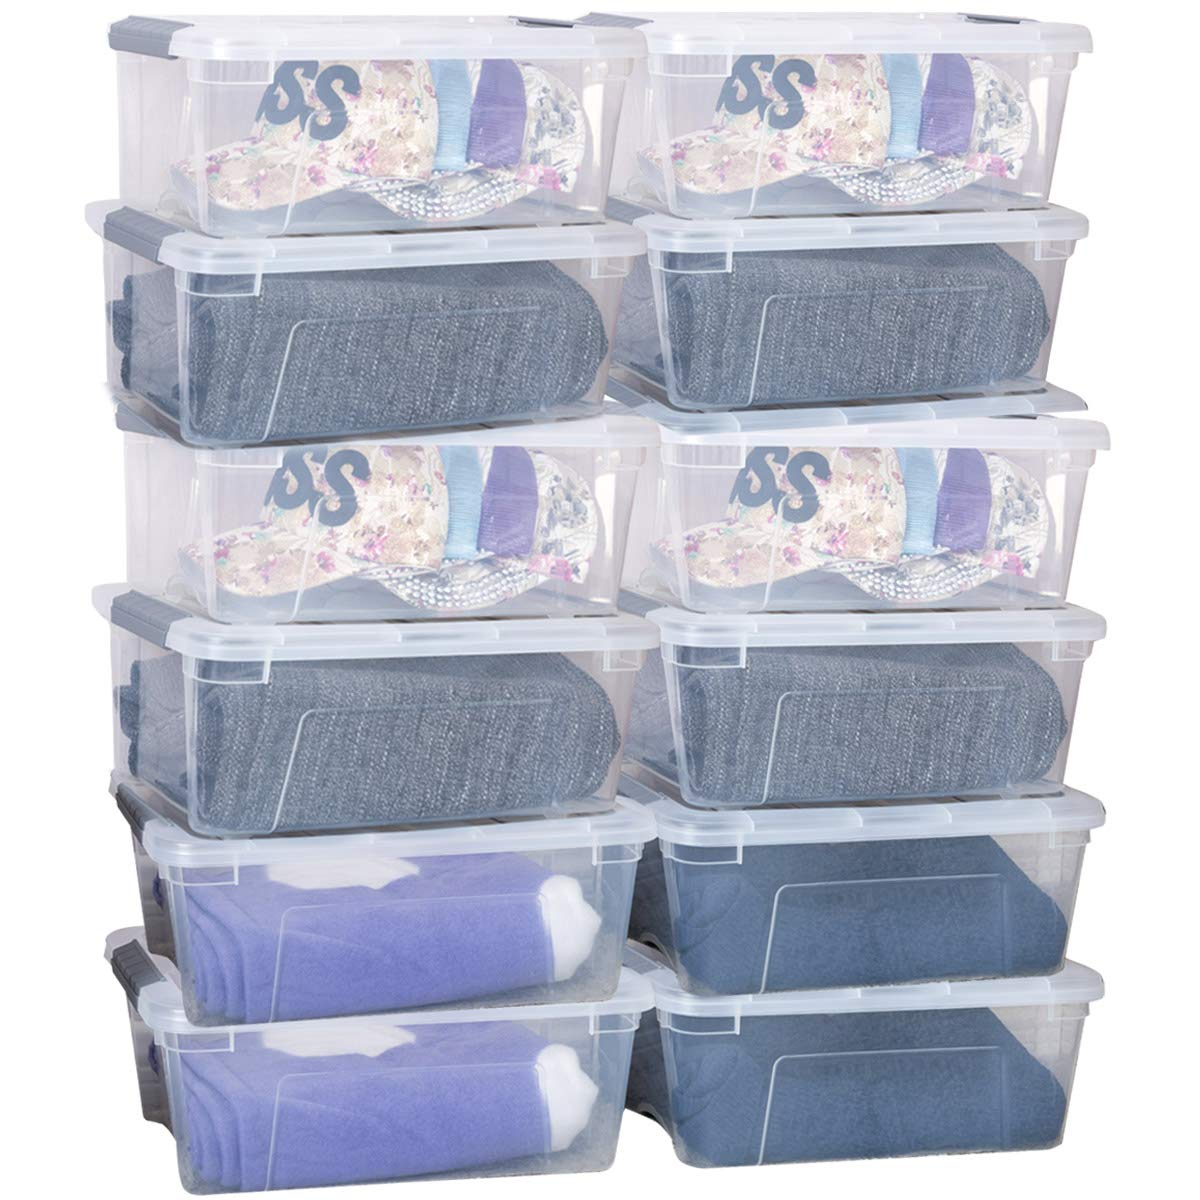 Giantex 12 Pack Storage Box Storage Tote Boxes W/Clear Lid 13 Quart / 12 Liter Each Liter Latch Stack Tubs Bins w/Clear Lid Latches Handles